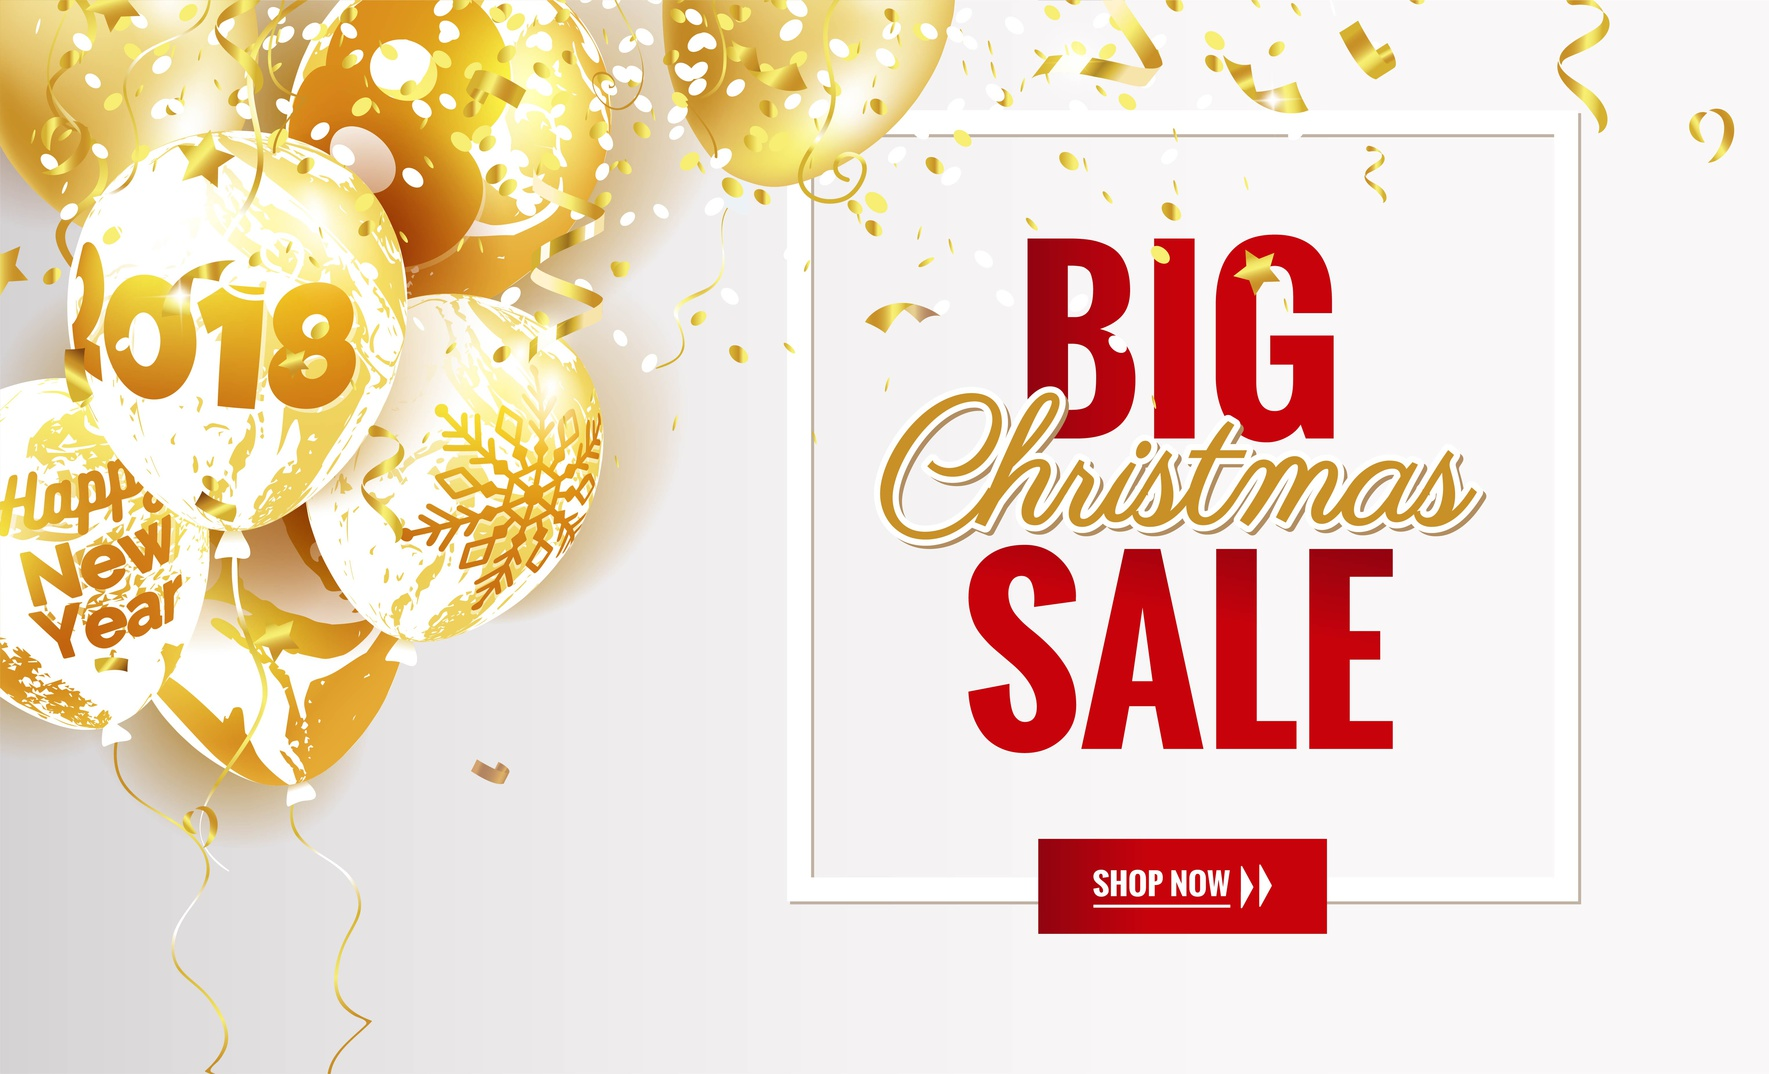 Big christmas sale poster. Beautiful winter background with golden balloons and frame. Voucher discount. Vector illustration